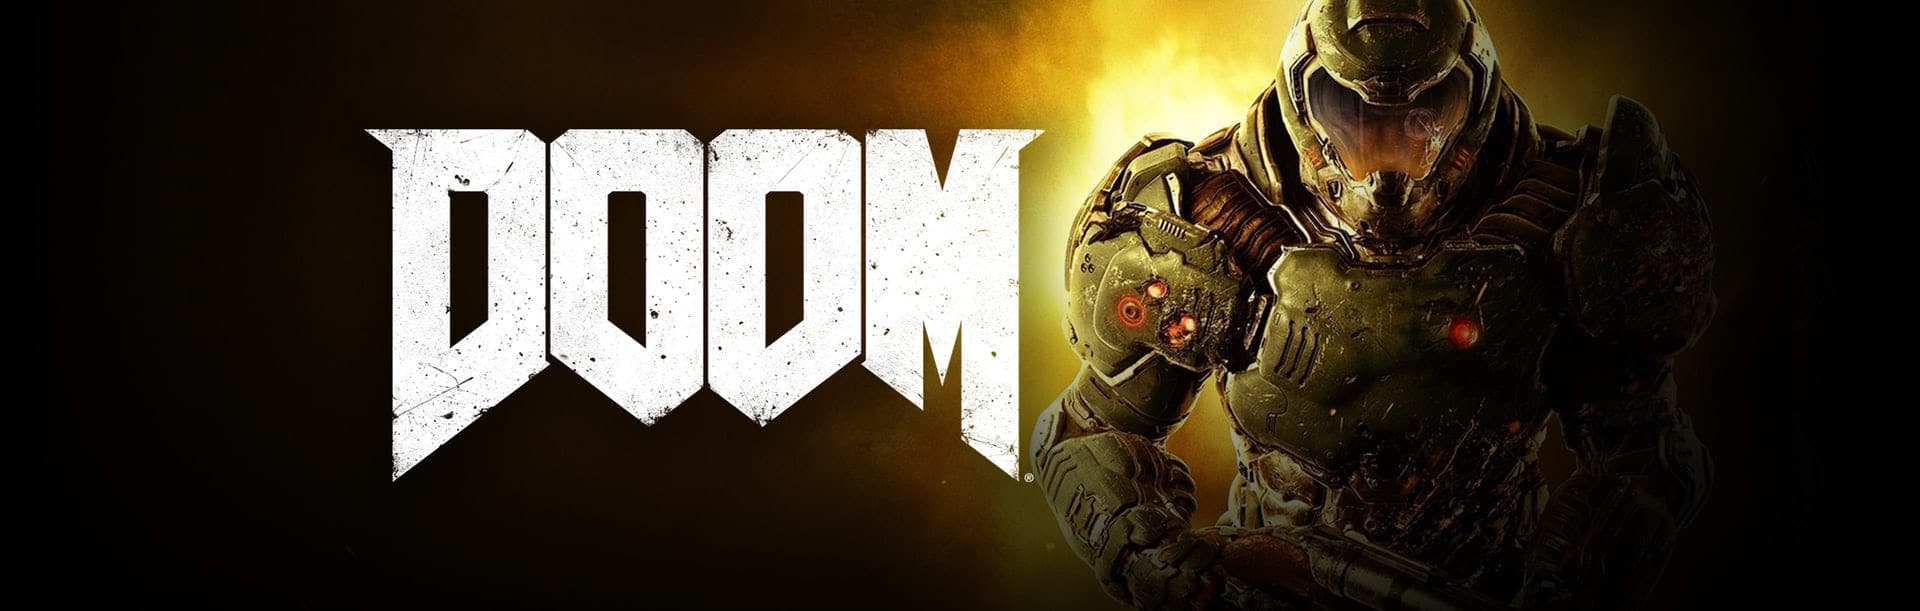 Doom for PC Steam key, video game $5.99